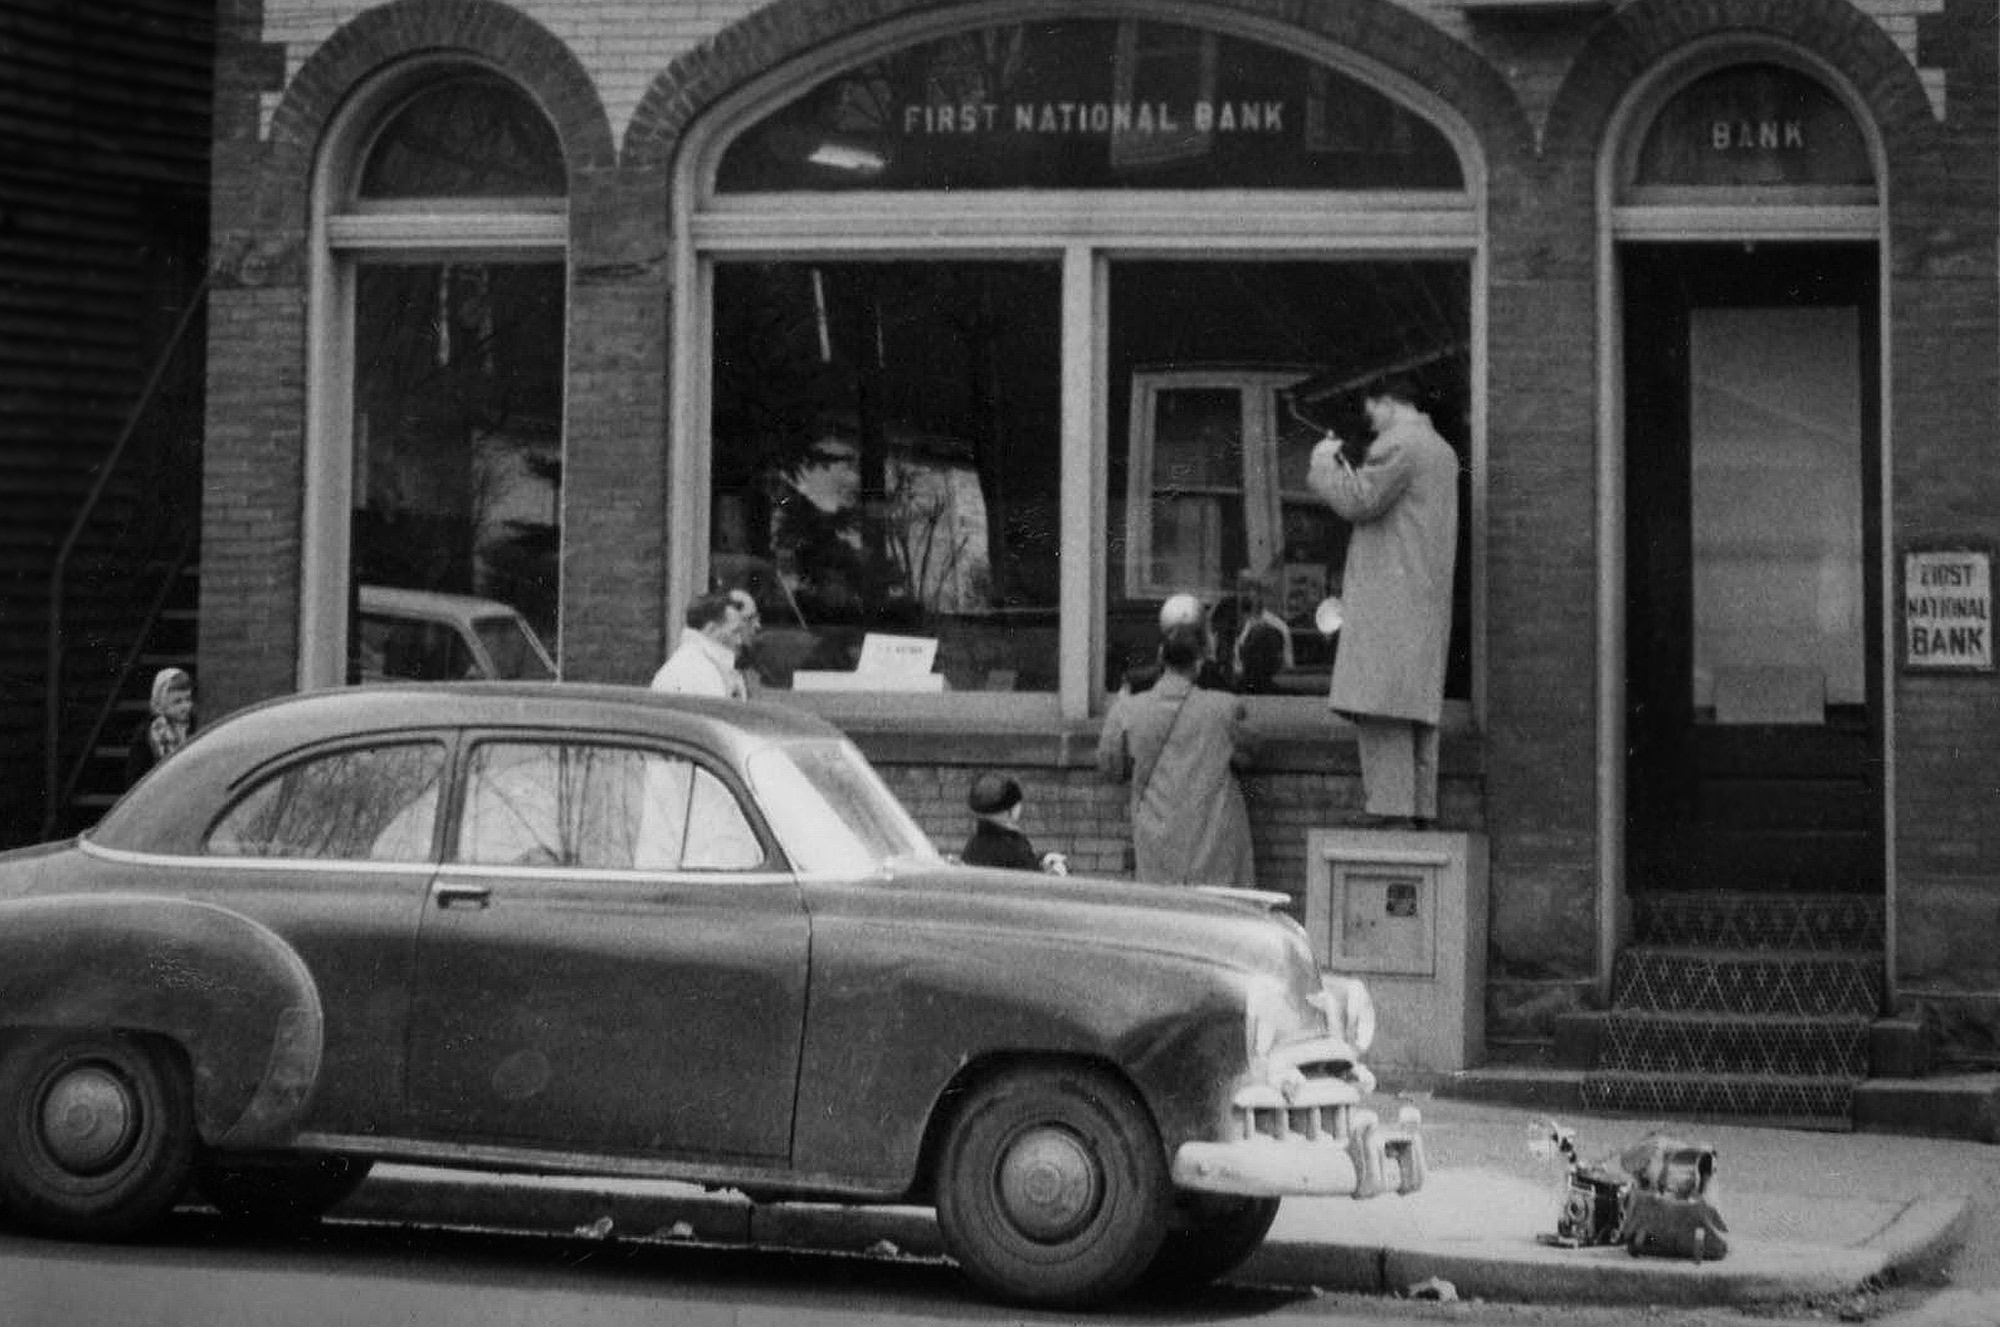 Detail of previous image, showing newspaper photographers and a young girl peering at the scene. (The Pittsburgh Press)